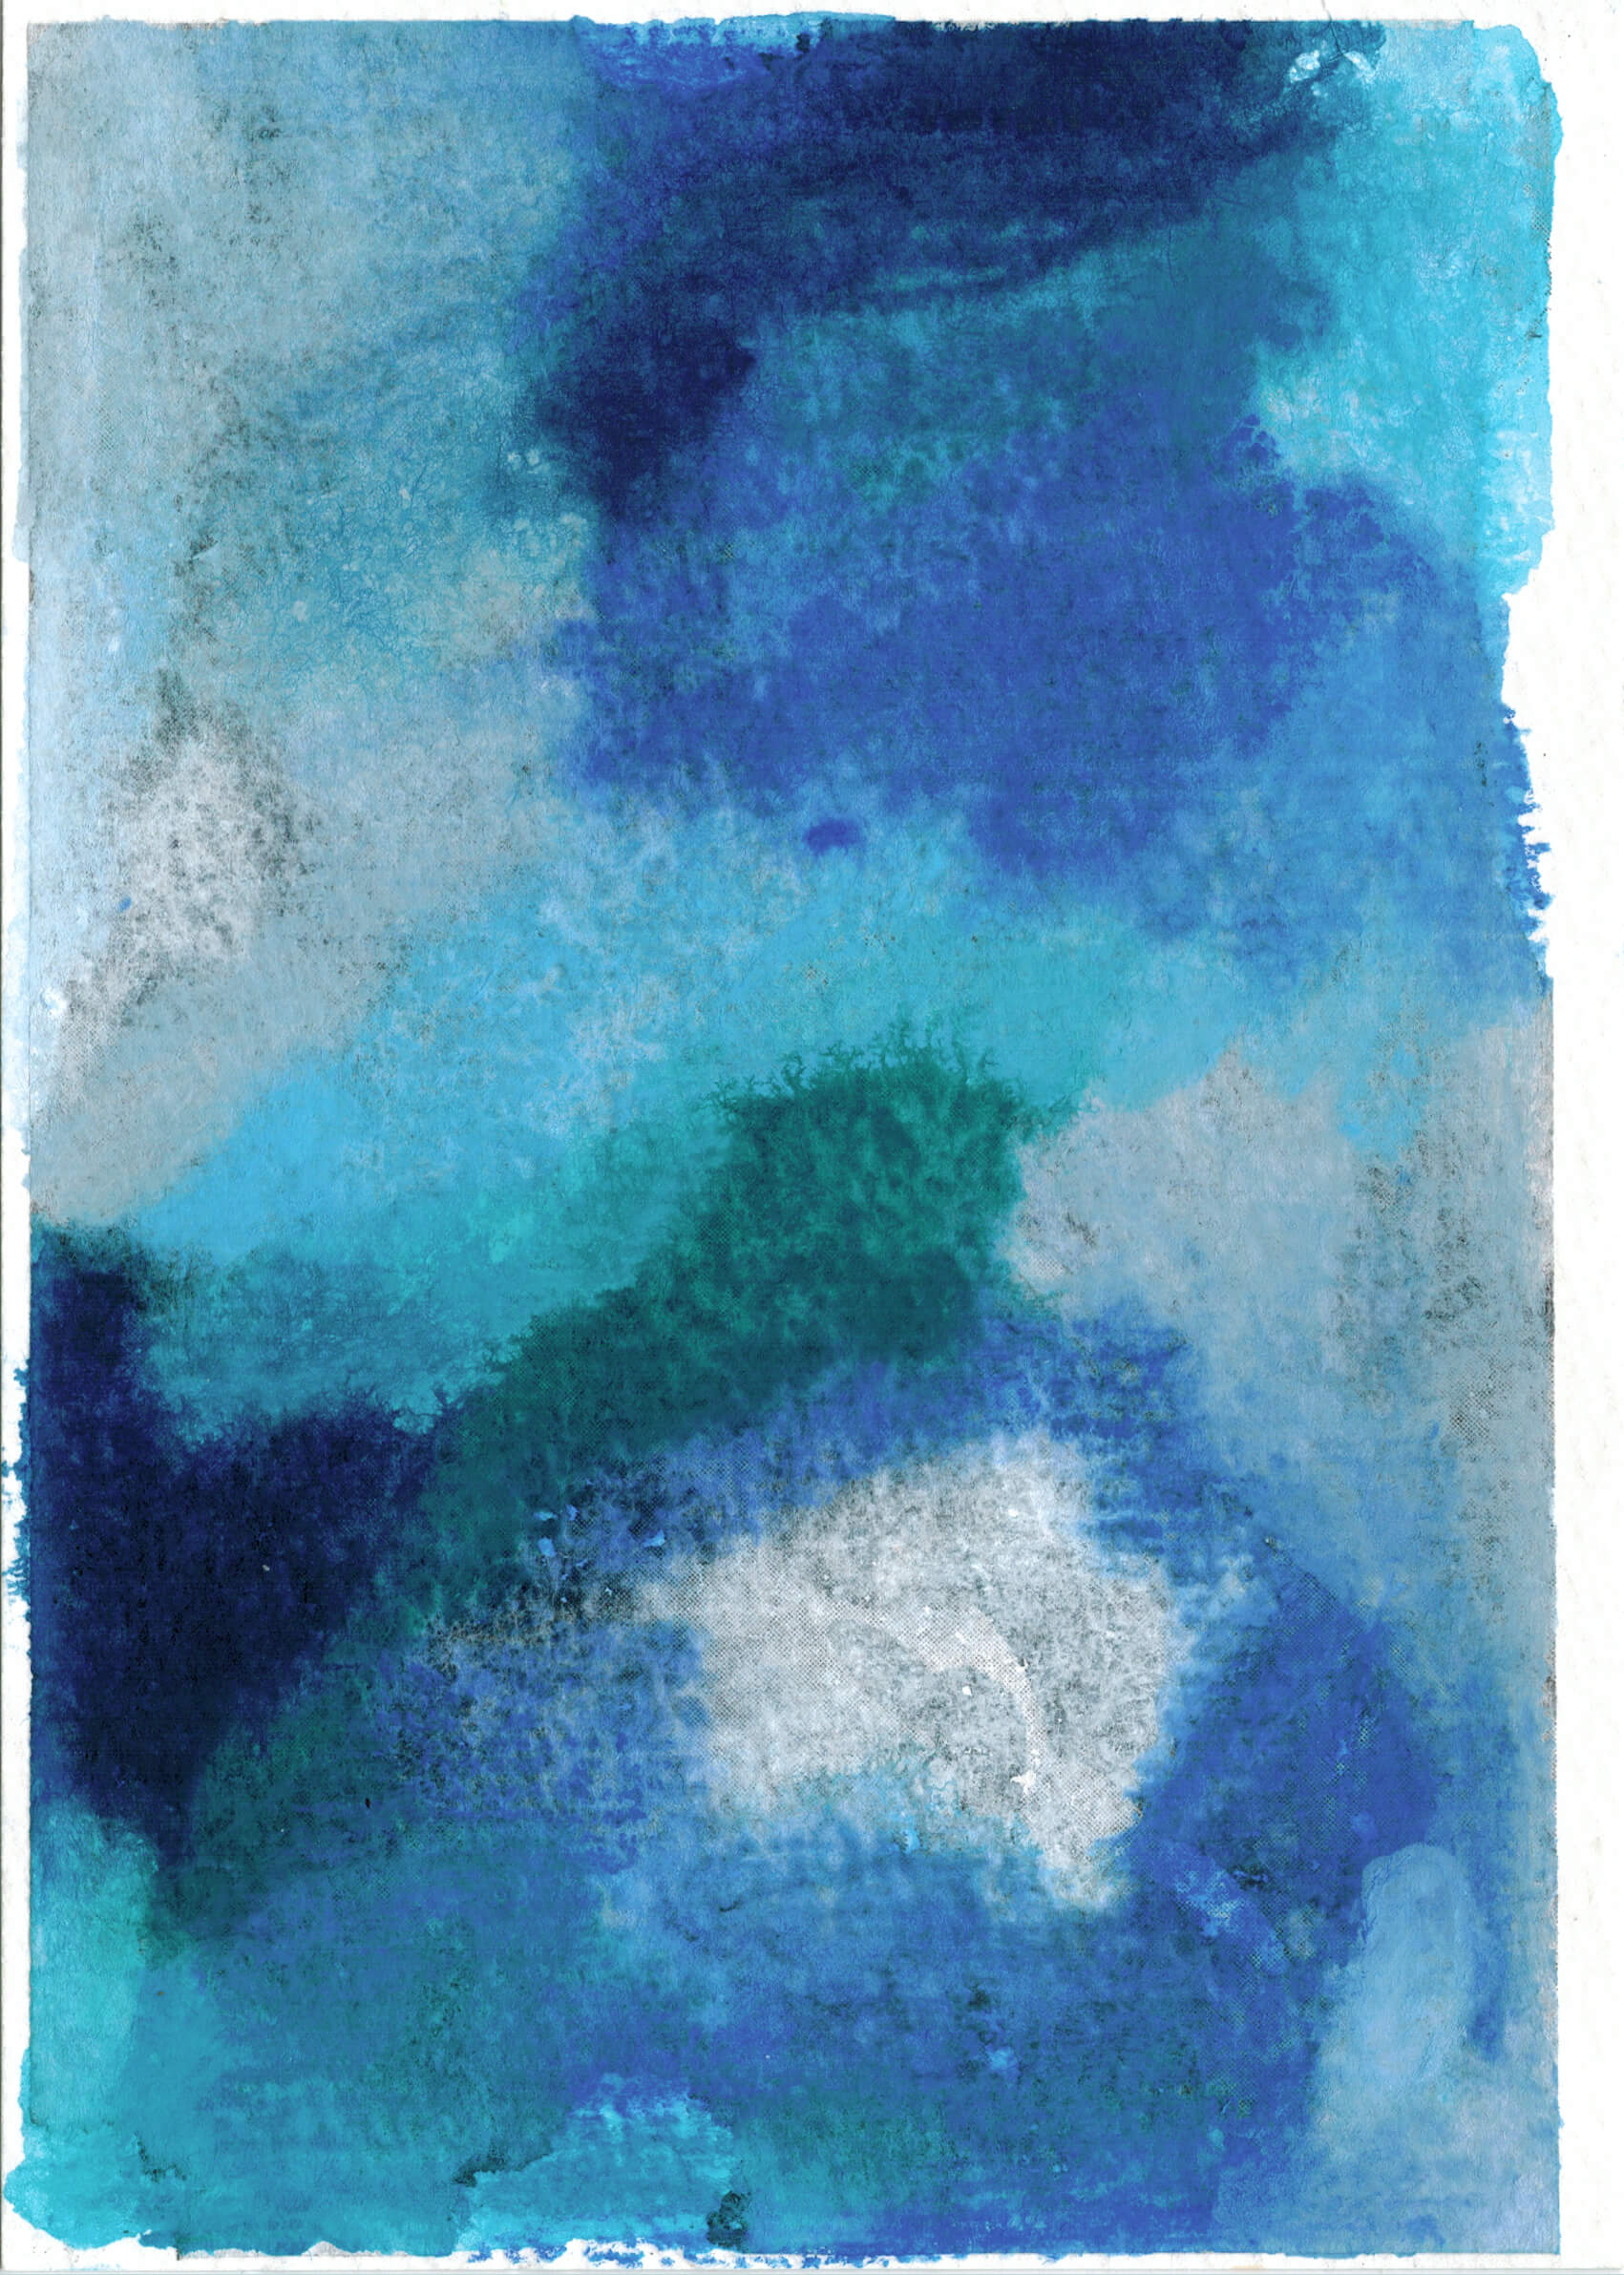 An abstract painting with large swaths of light and dark blues, white and gray.